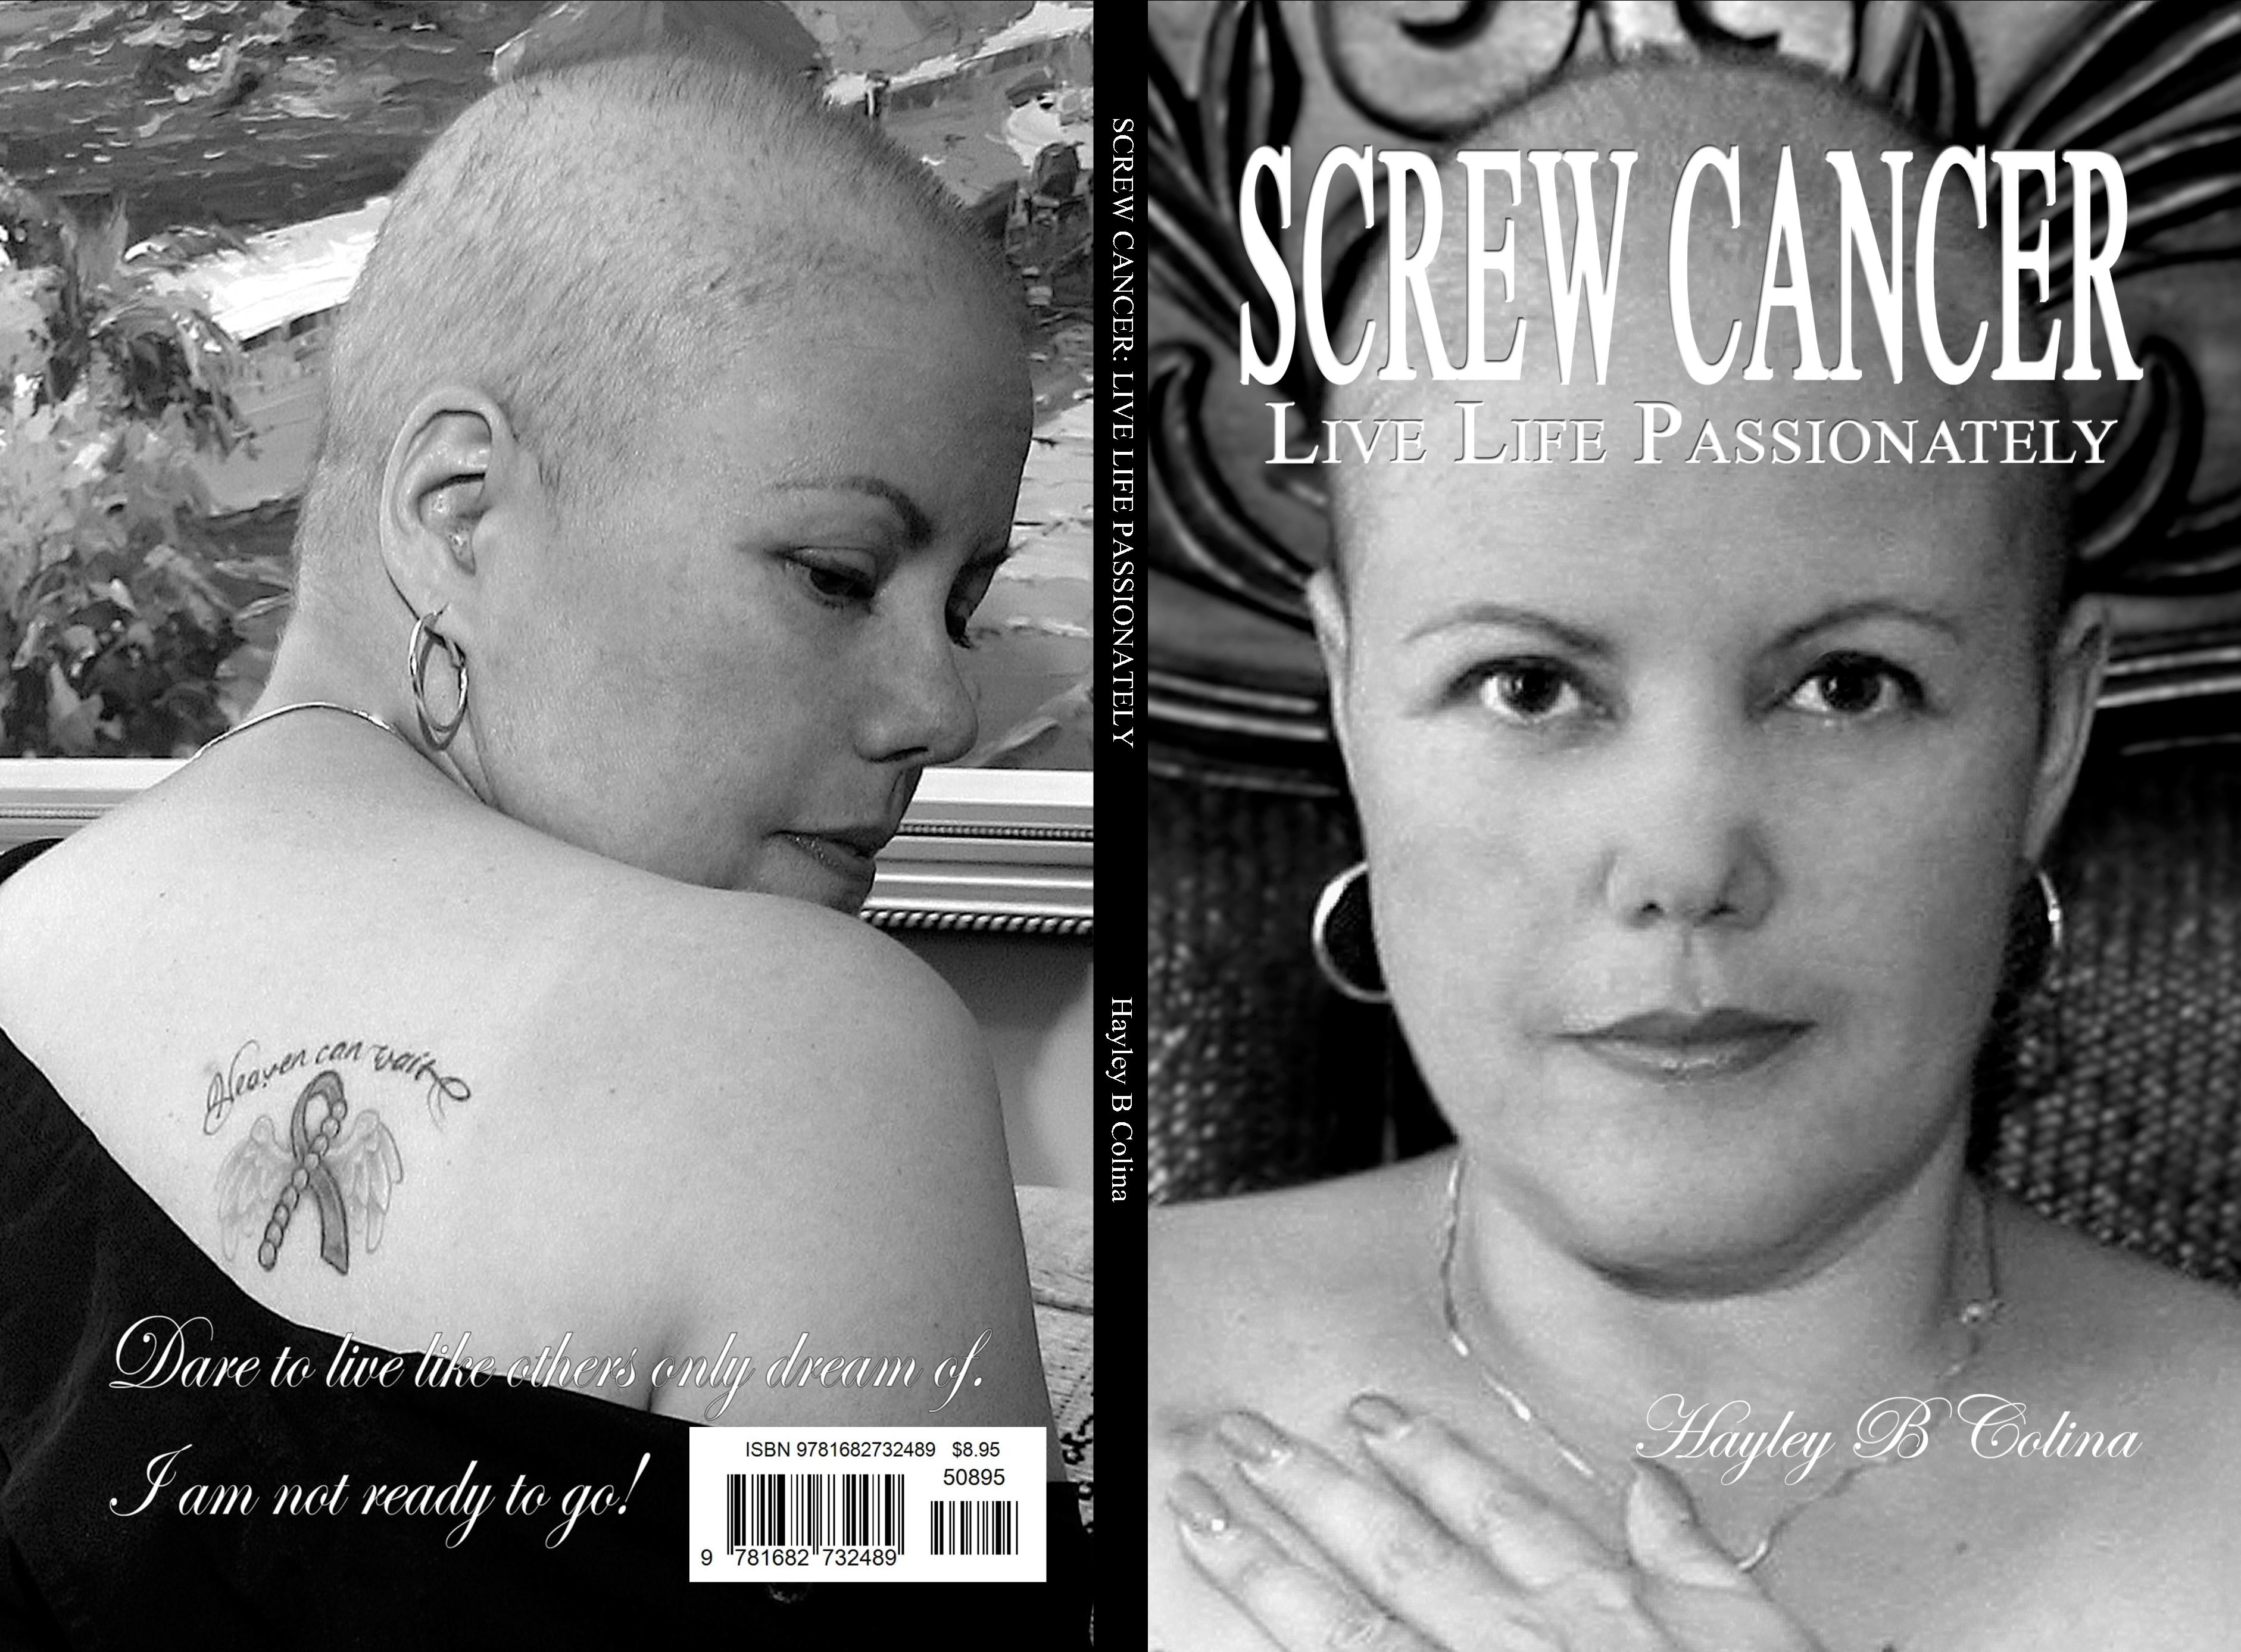 SCREW CANCER: LIVE LIFE PASSIONATELY cover image